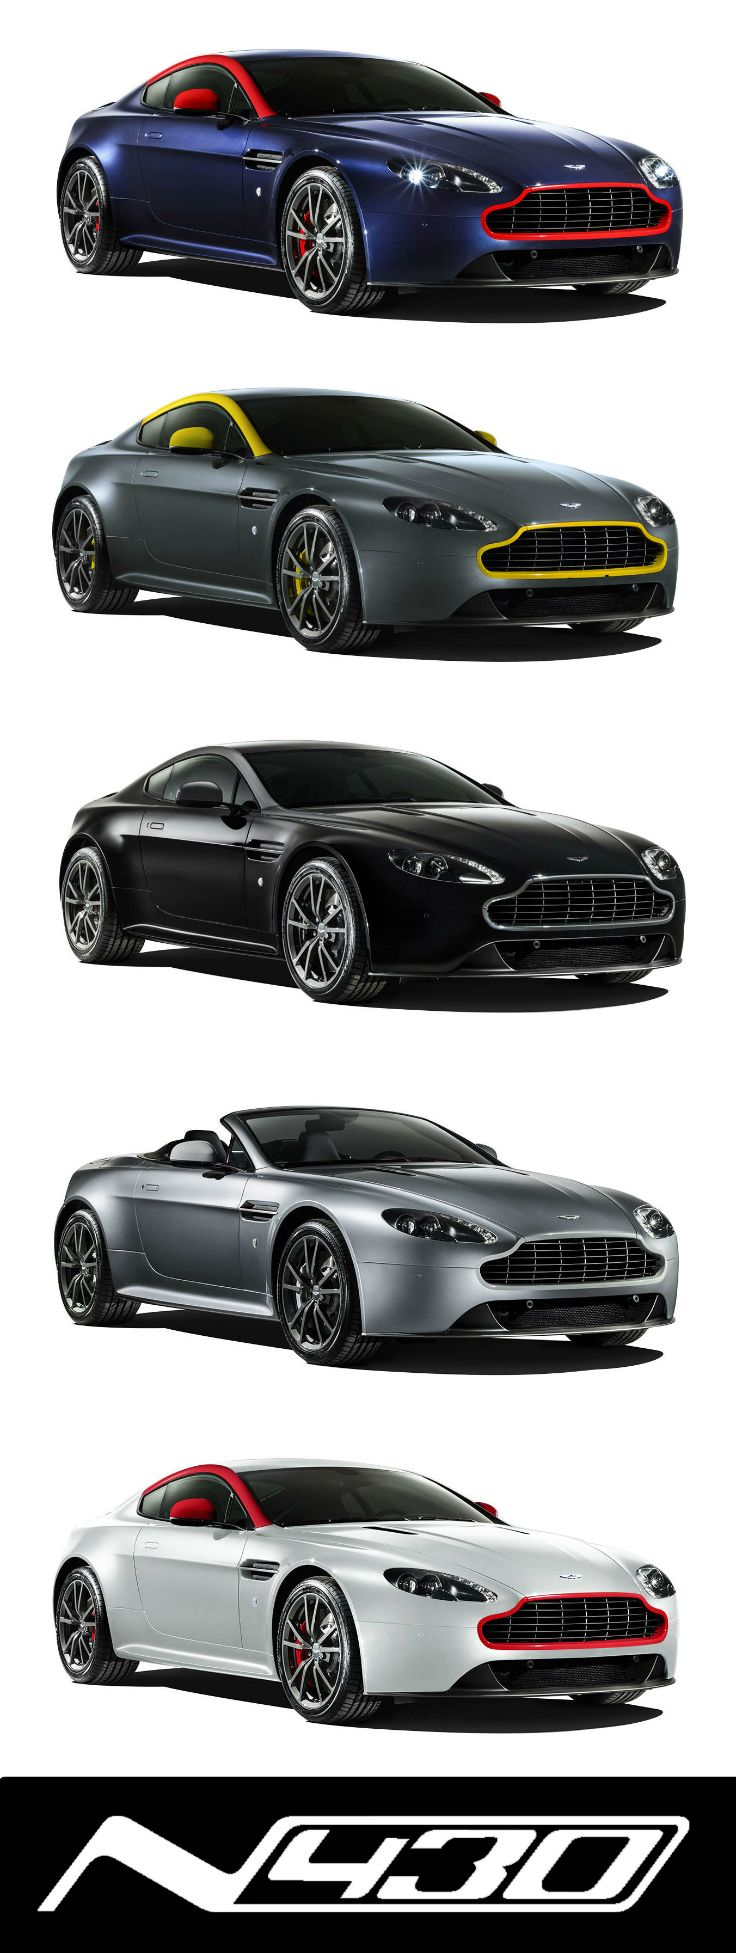 17 best ideas about aston martin vantage on pinterest aston vantage carbon black and aston. Black Bedroom Furniture Sets. Home Design Ideas